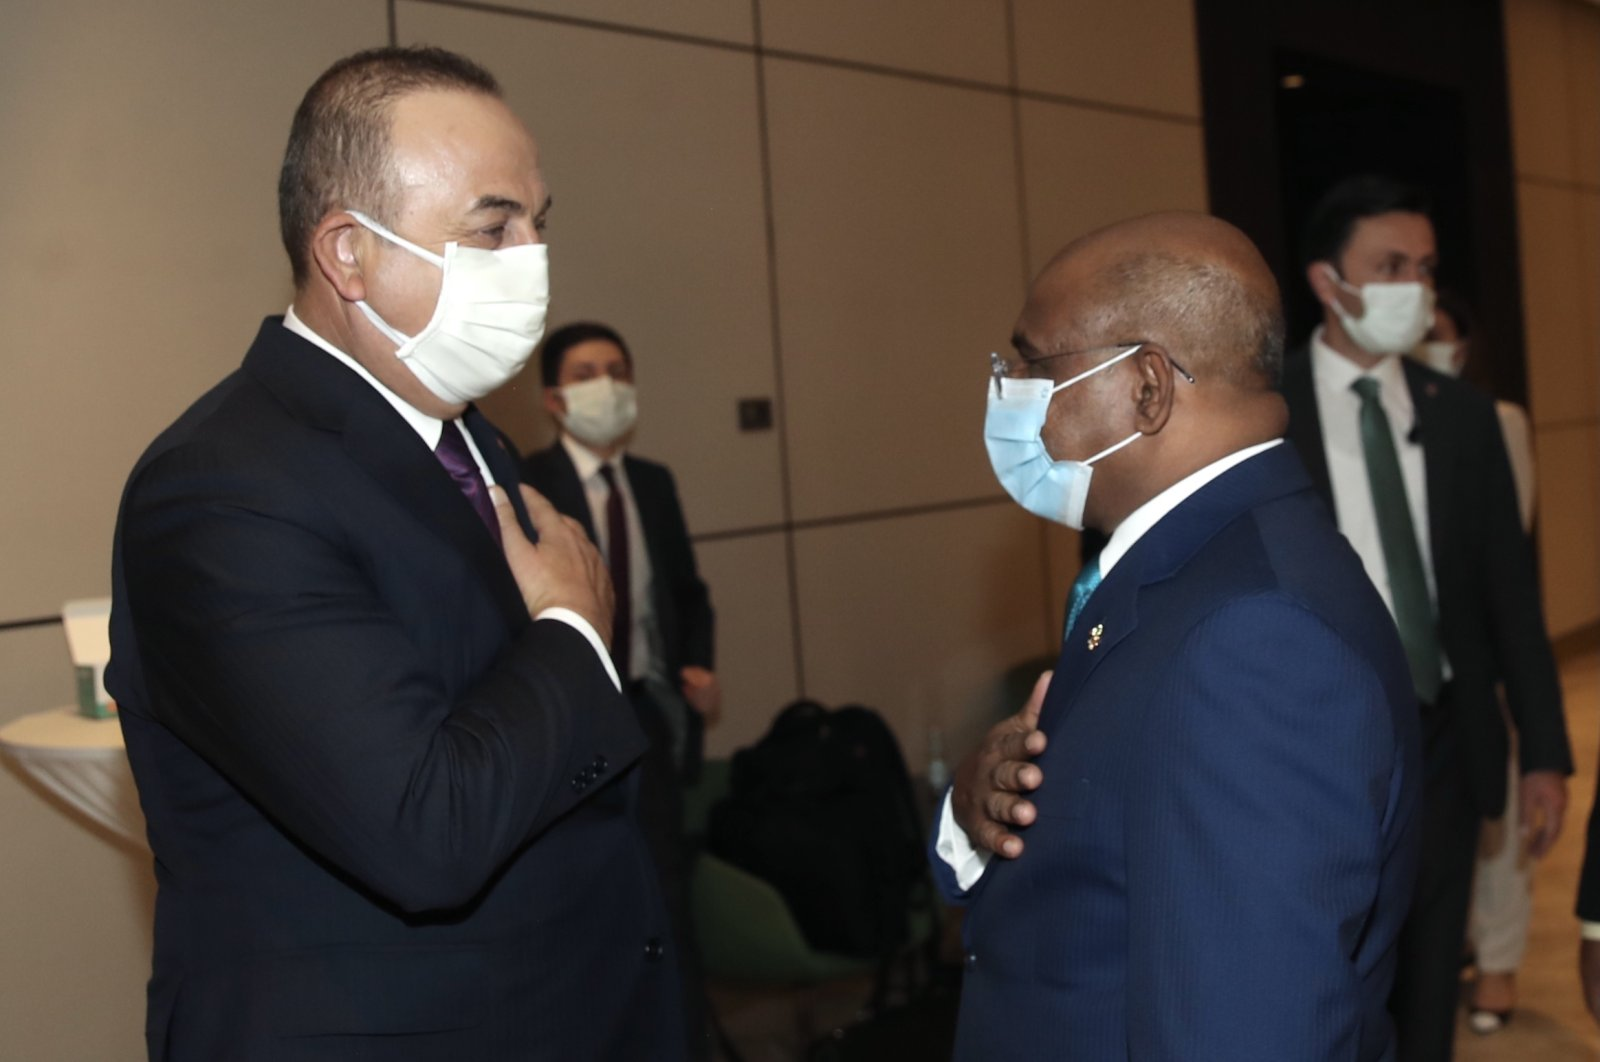 Foreign Minister Mevlüt Çavuşoğlu holds bilateral talks with his Maldivian counterpart Abdulla Shahid in Niger's capital Niamey, Nov. 27, 2020. (AA Photo)